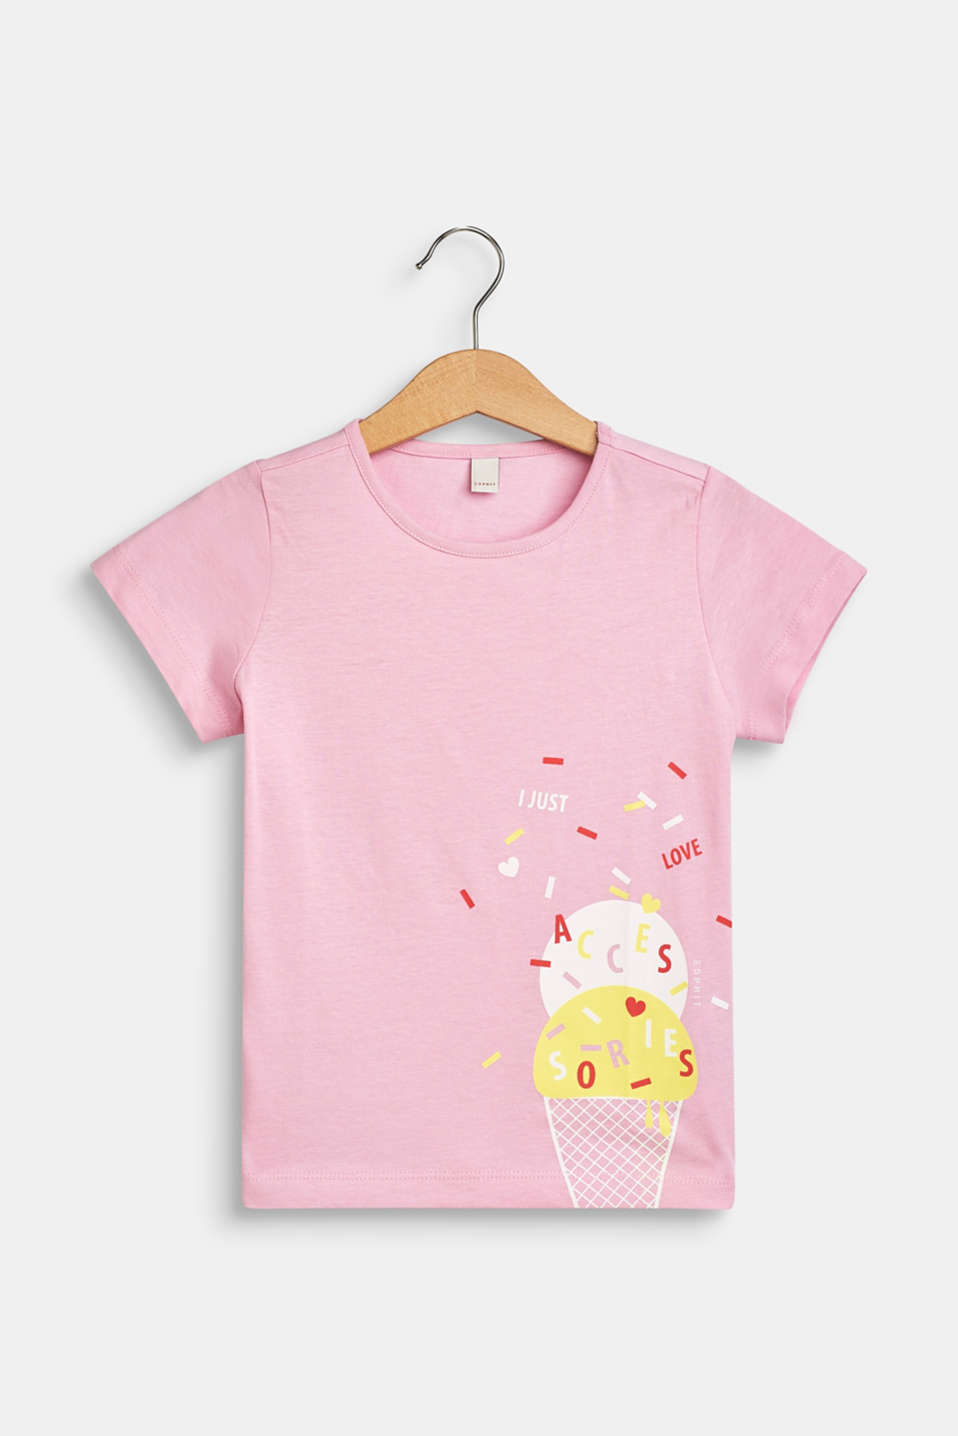 Esprit - T-shirt with an ice cream print, 100% cotton